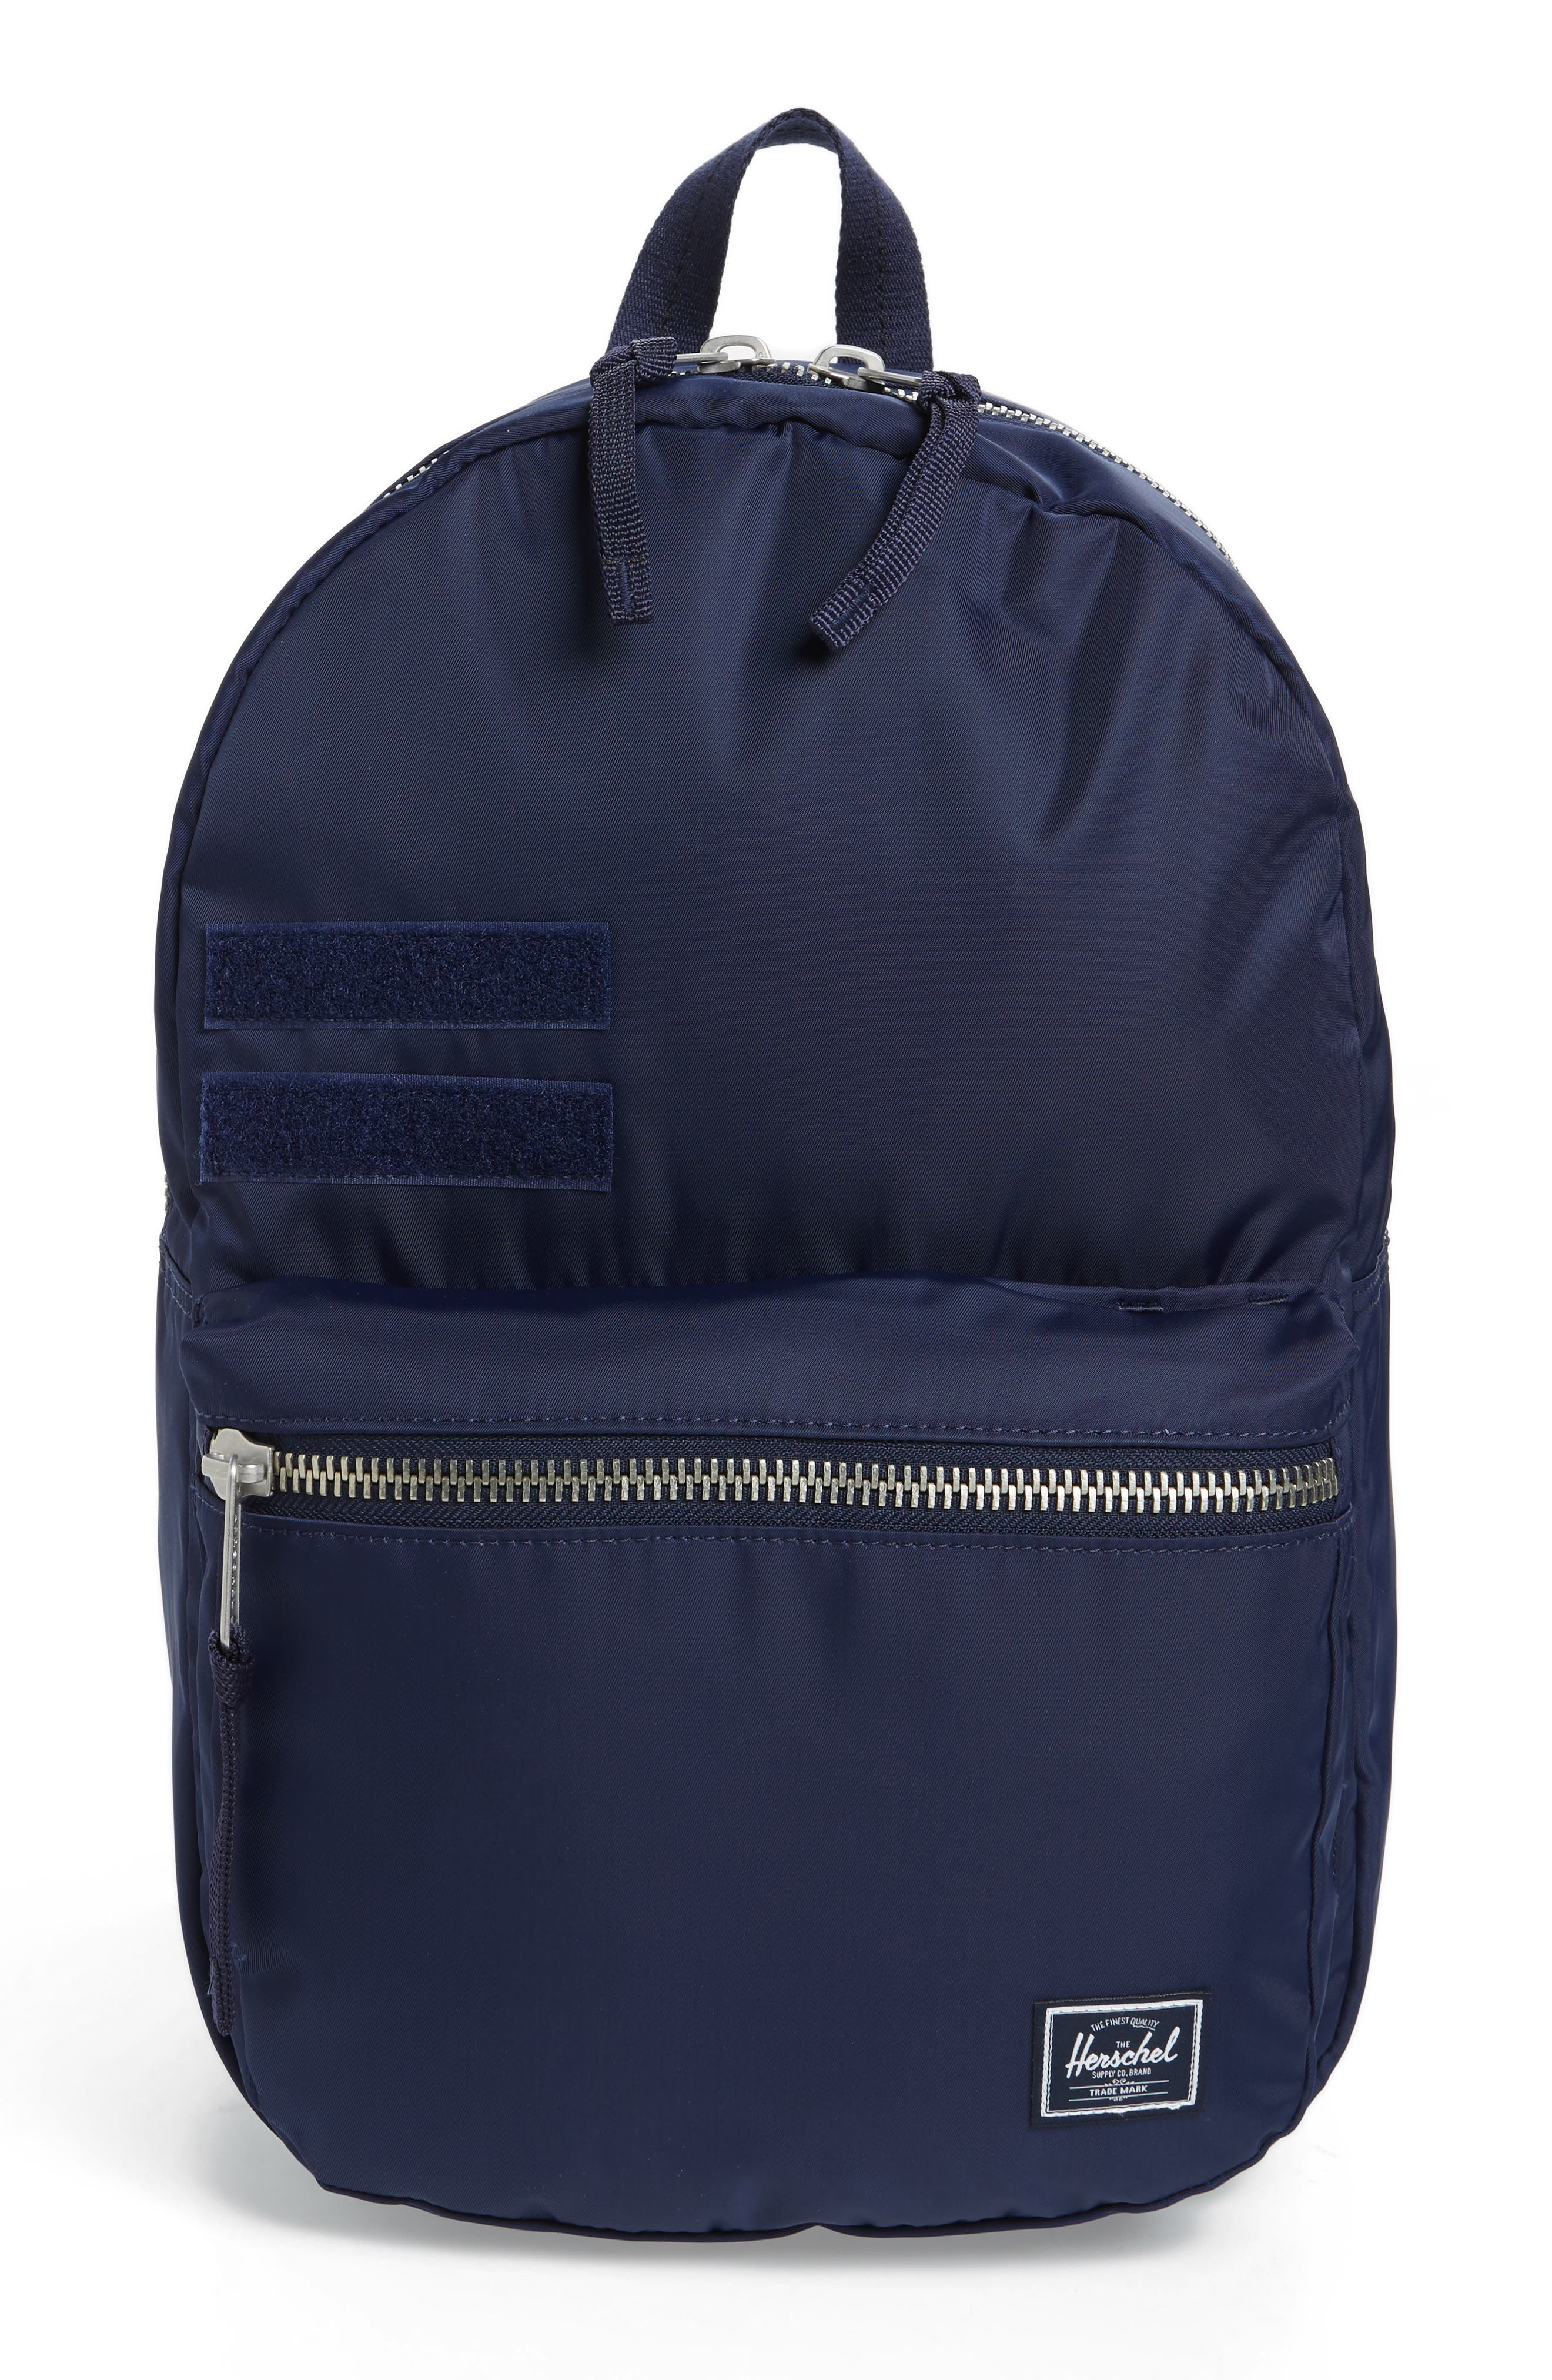 Lawson Surplus Collection Backpack,                         Main,                         color, 477